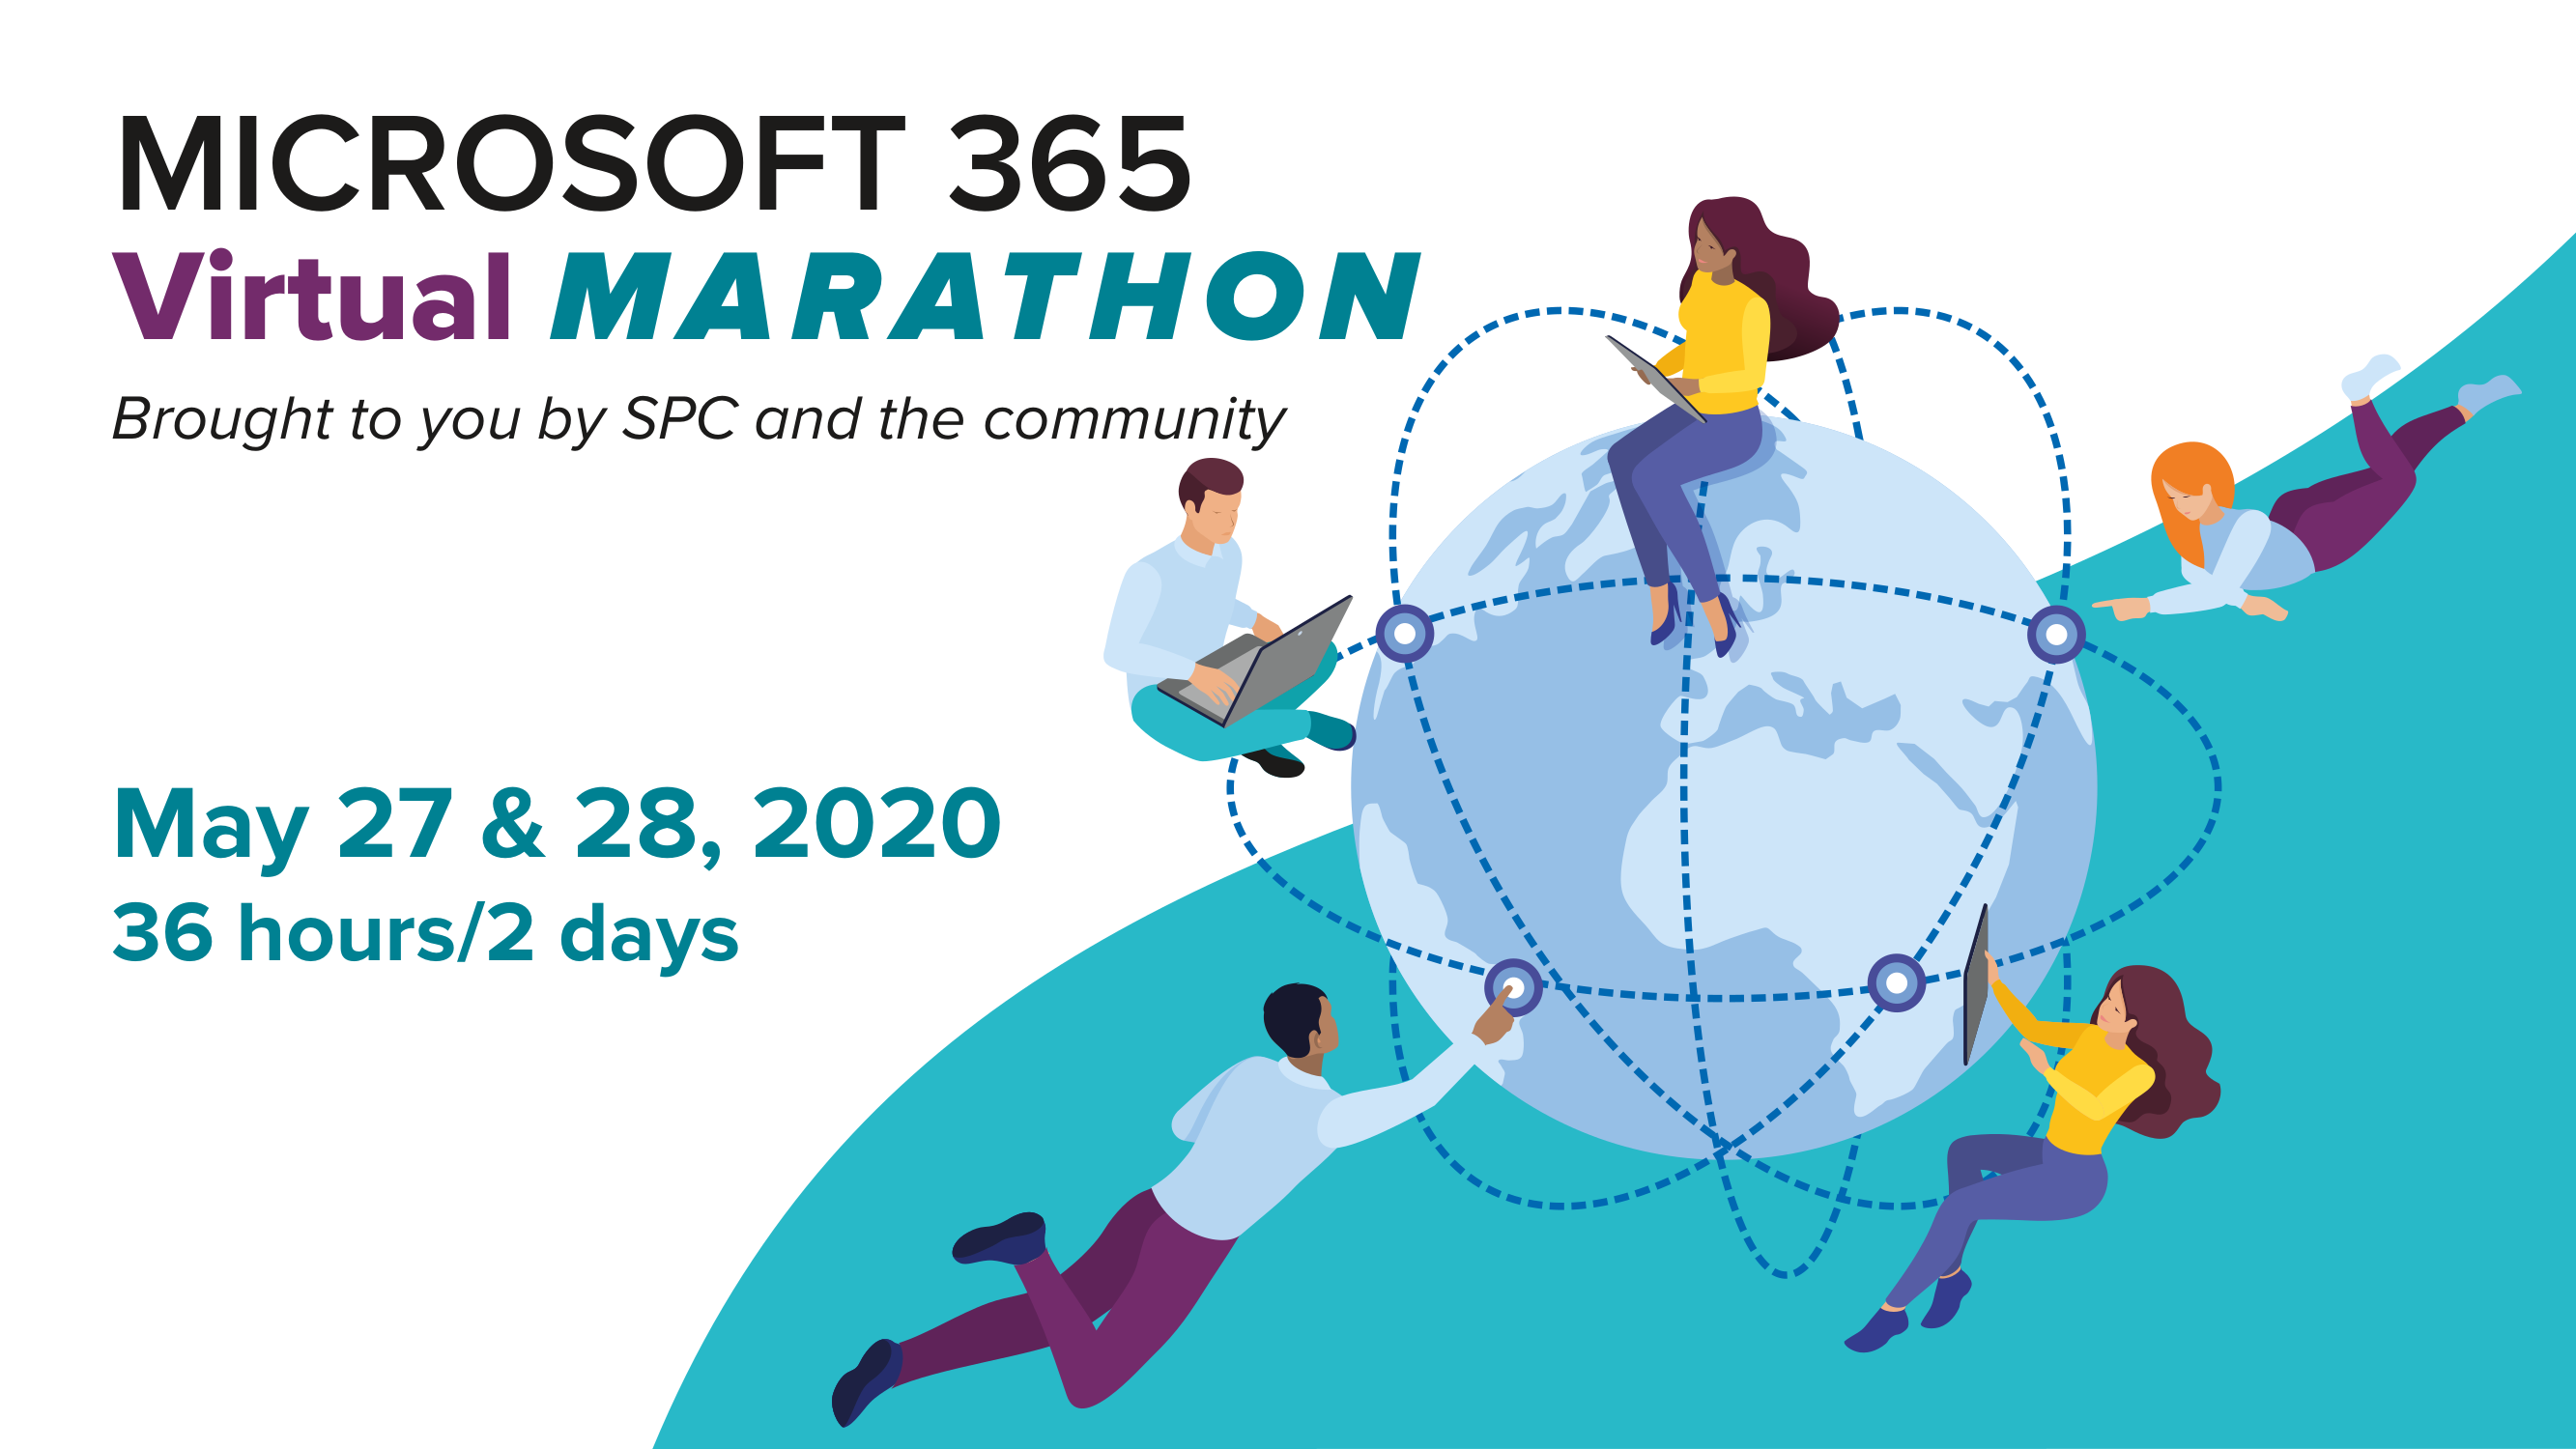 Microsoft 365 Virtual Marathon, May 27-28, 2020 logo